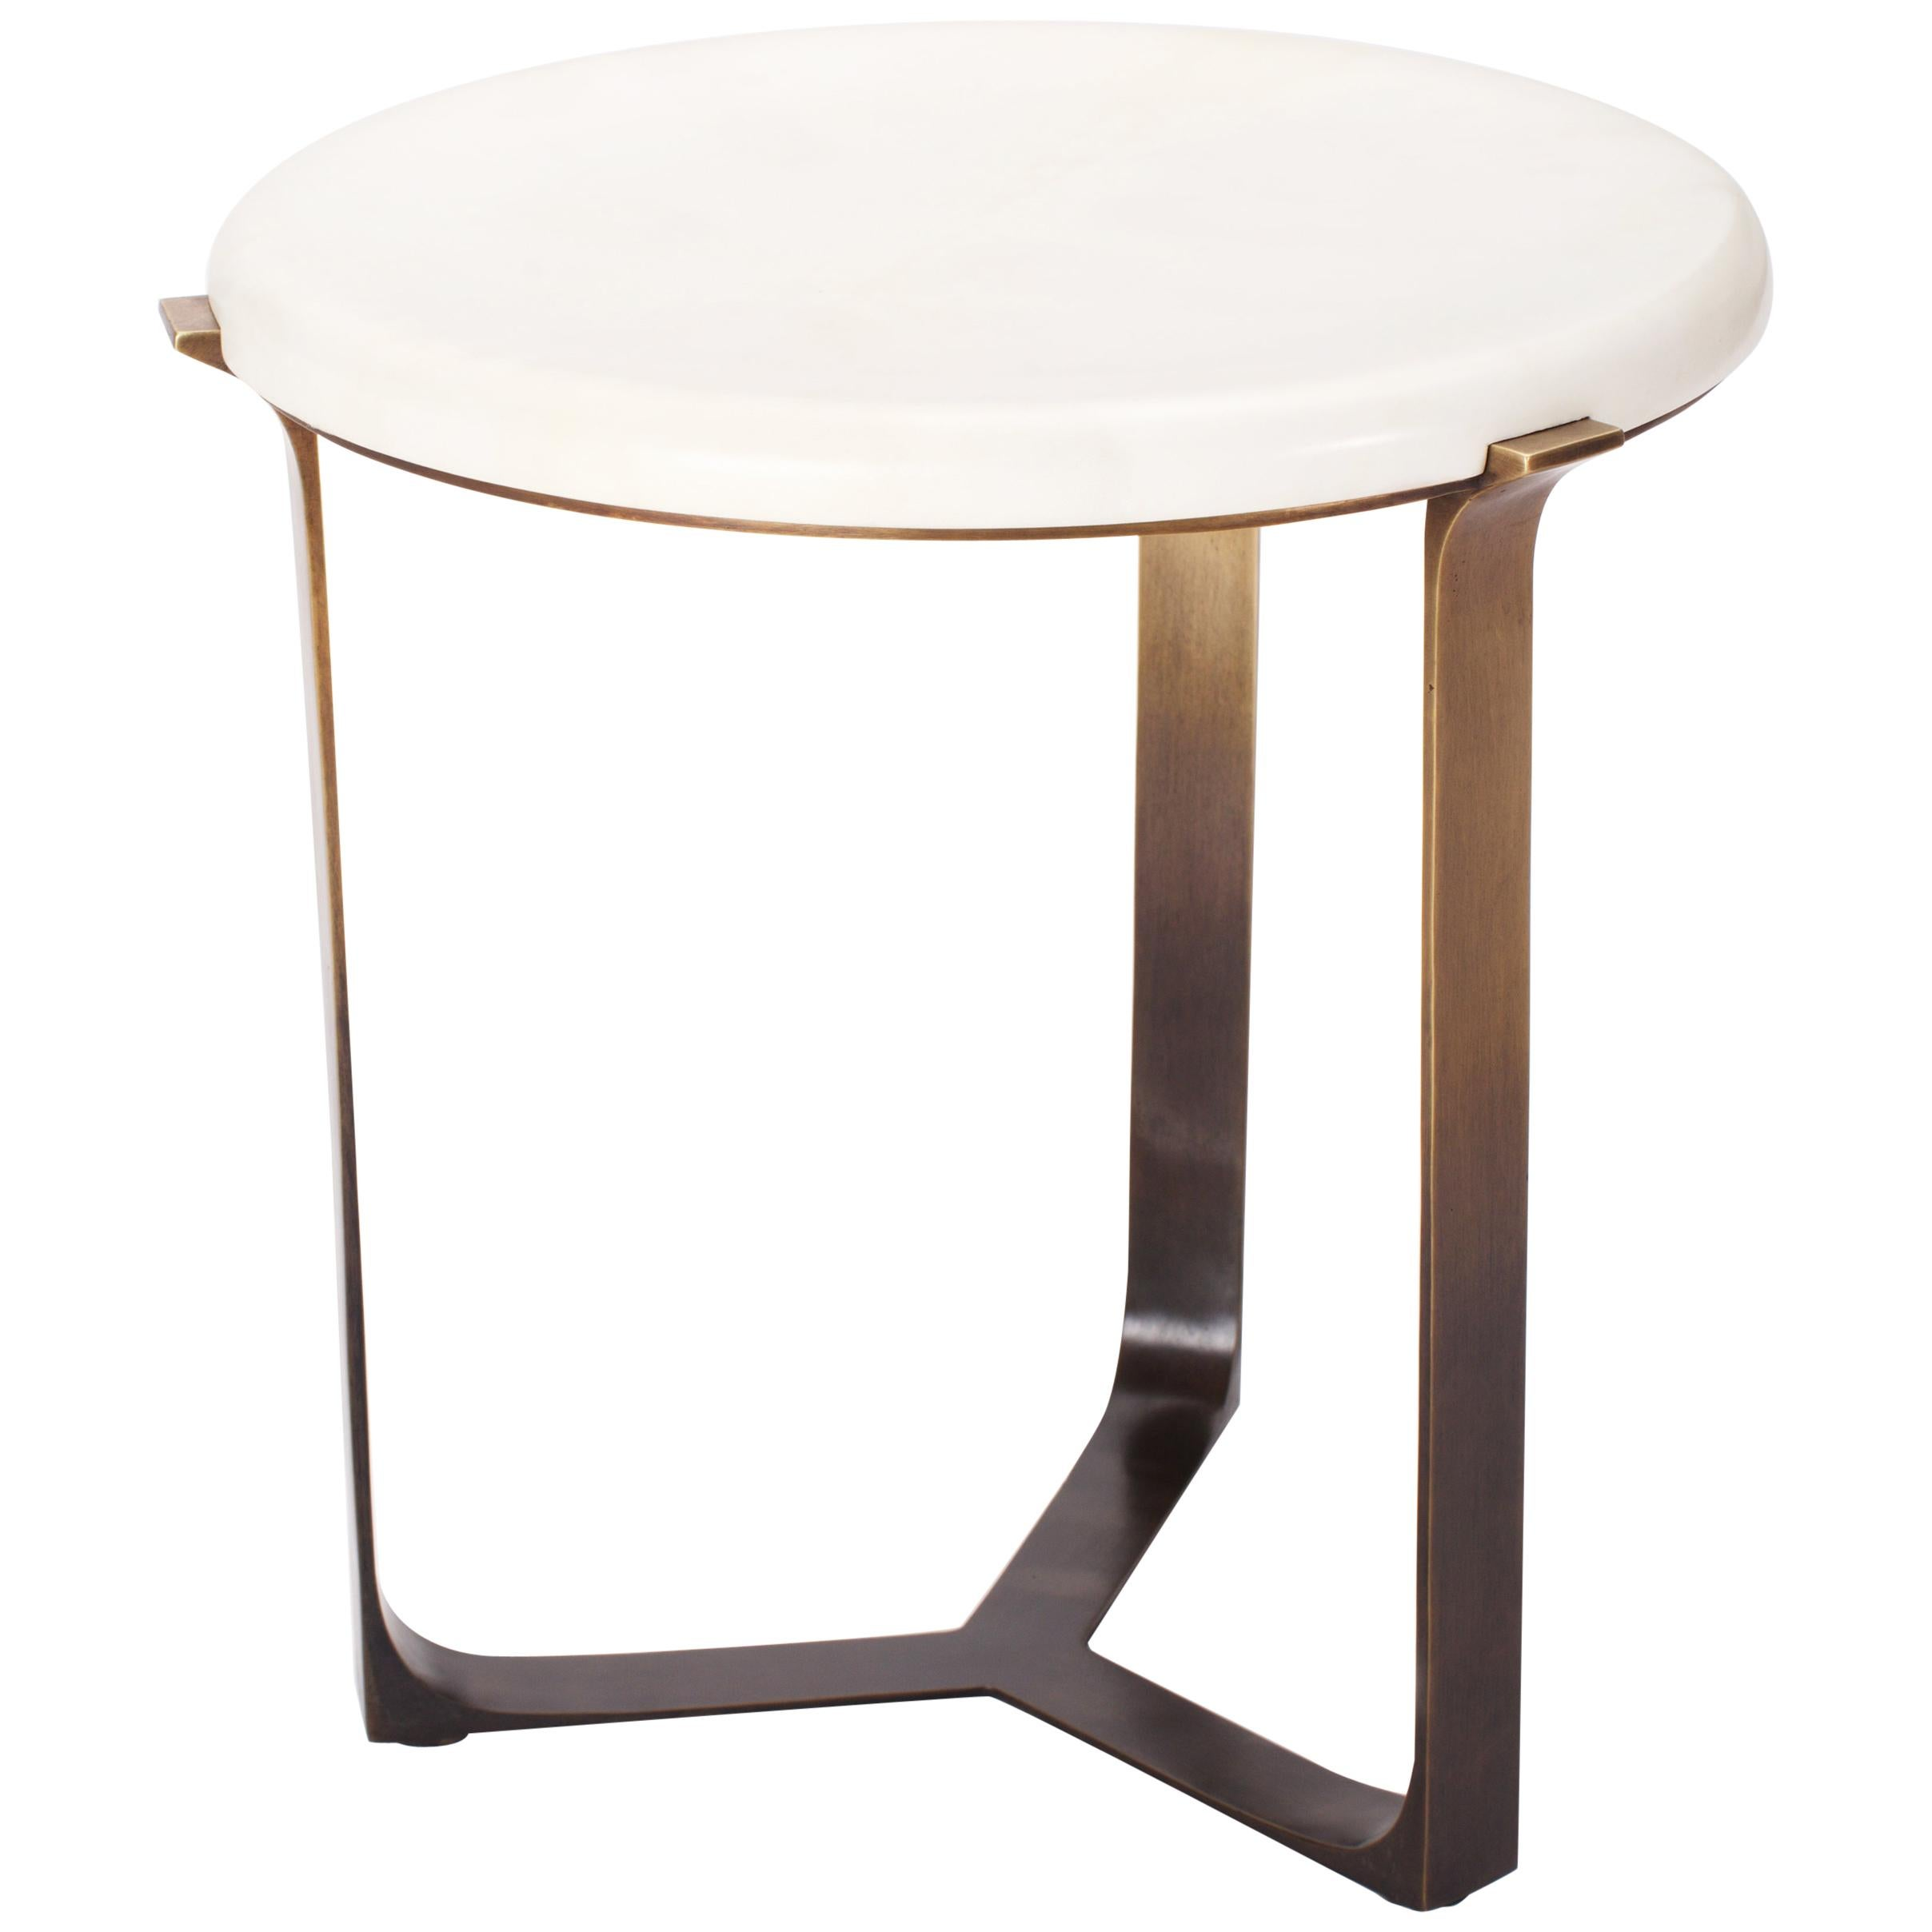 Parchment Top Round Arch Table with Bronze Ombre Finish Base by Elan Atelier